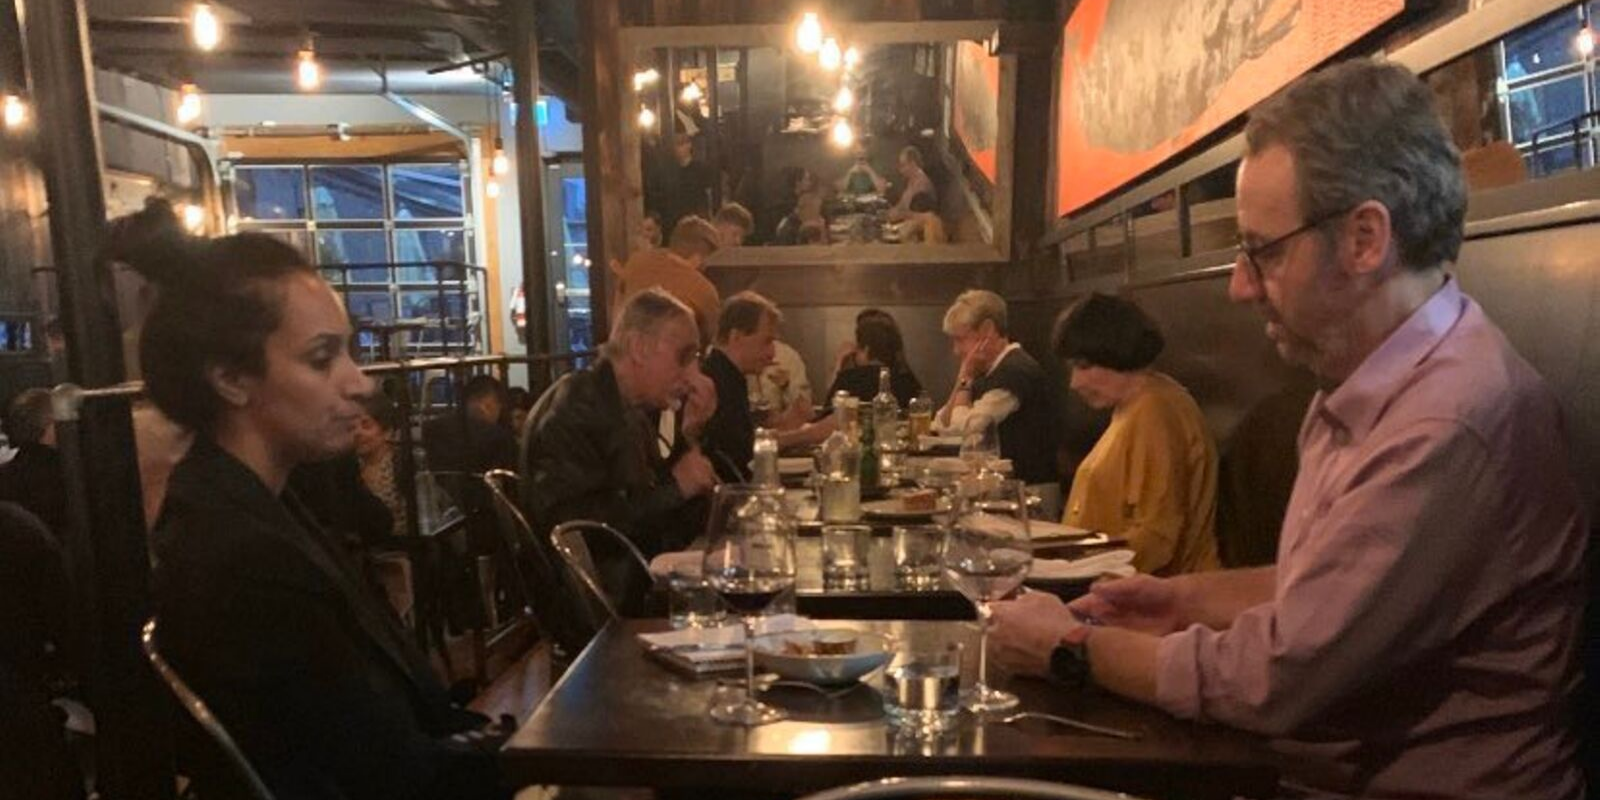 Election debate moderator had dinner with Trudeau's disgraced top advisor week before debate